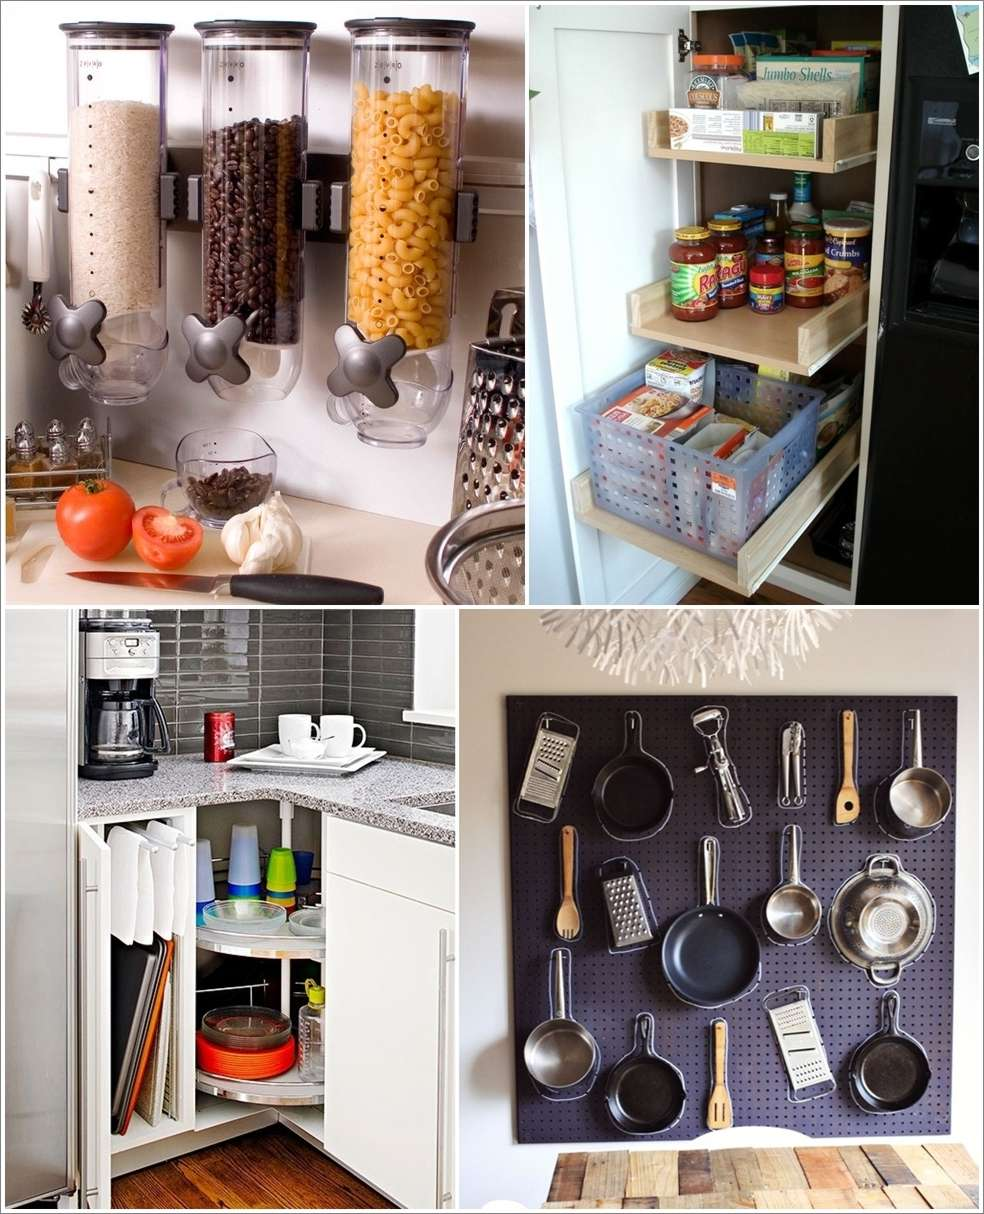 17 Big Life Hacks For Your Small Kitchen